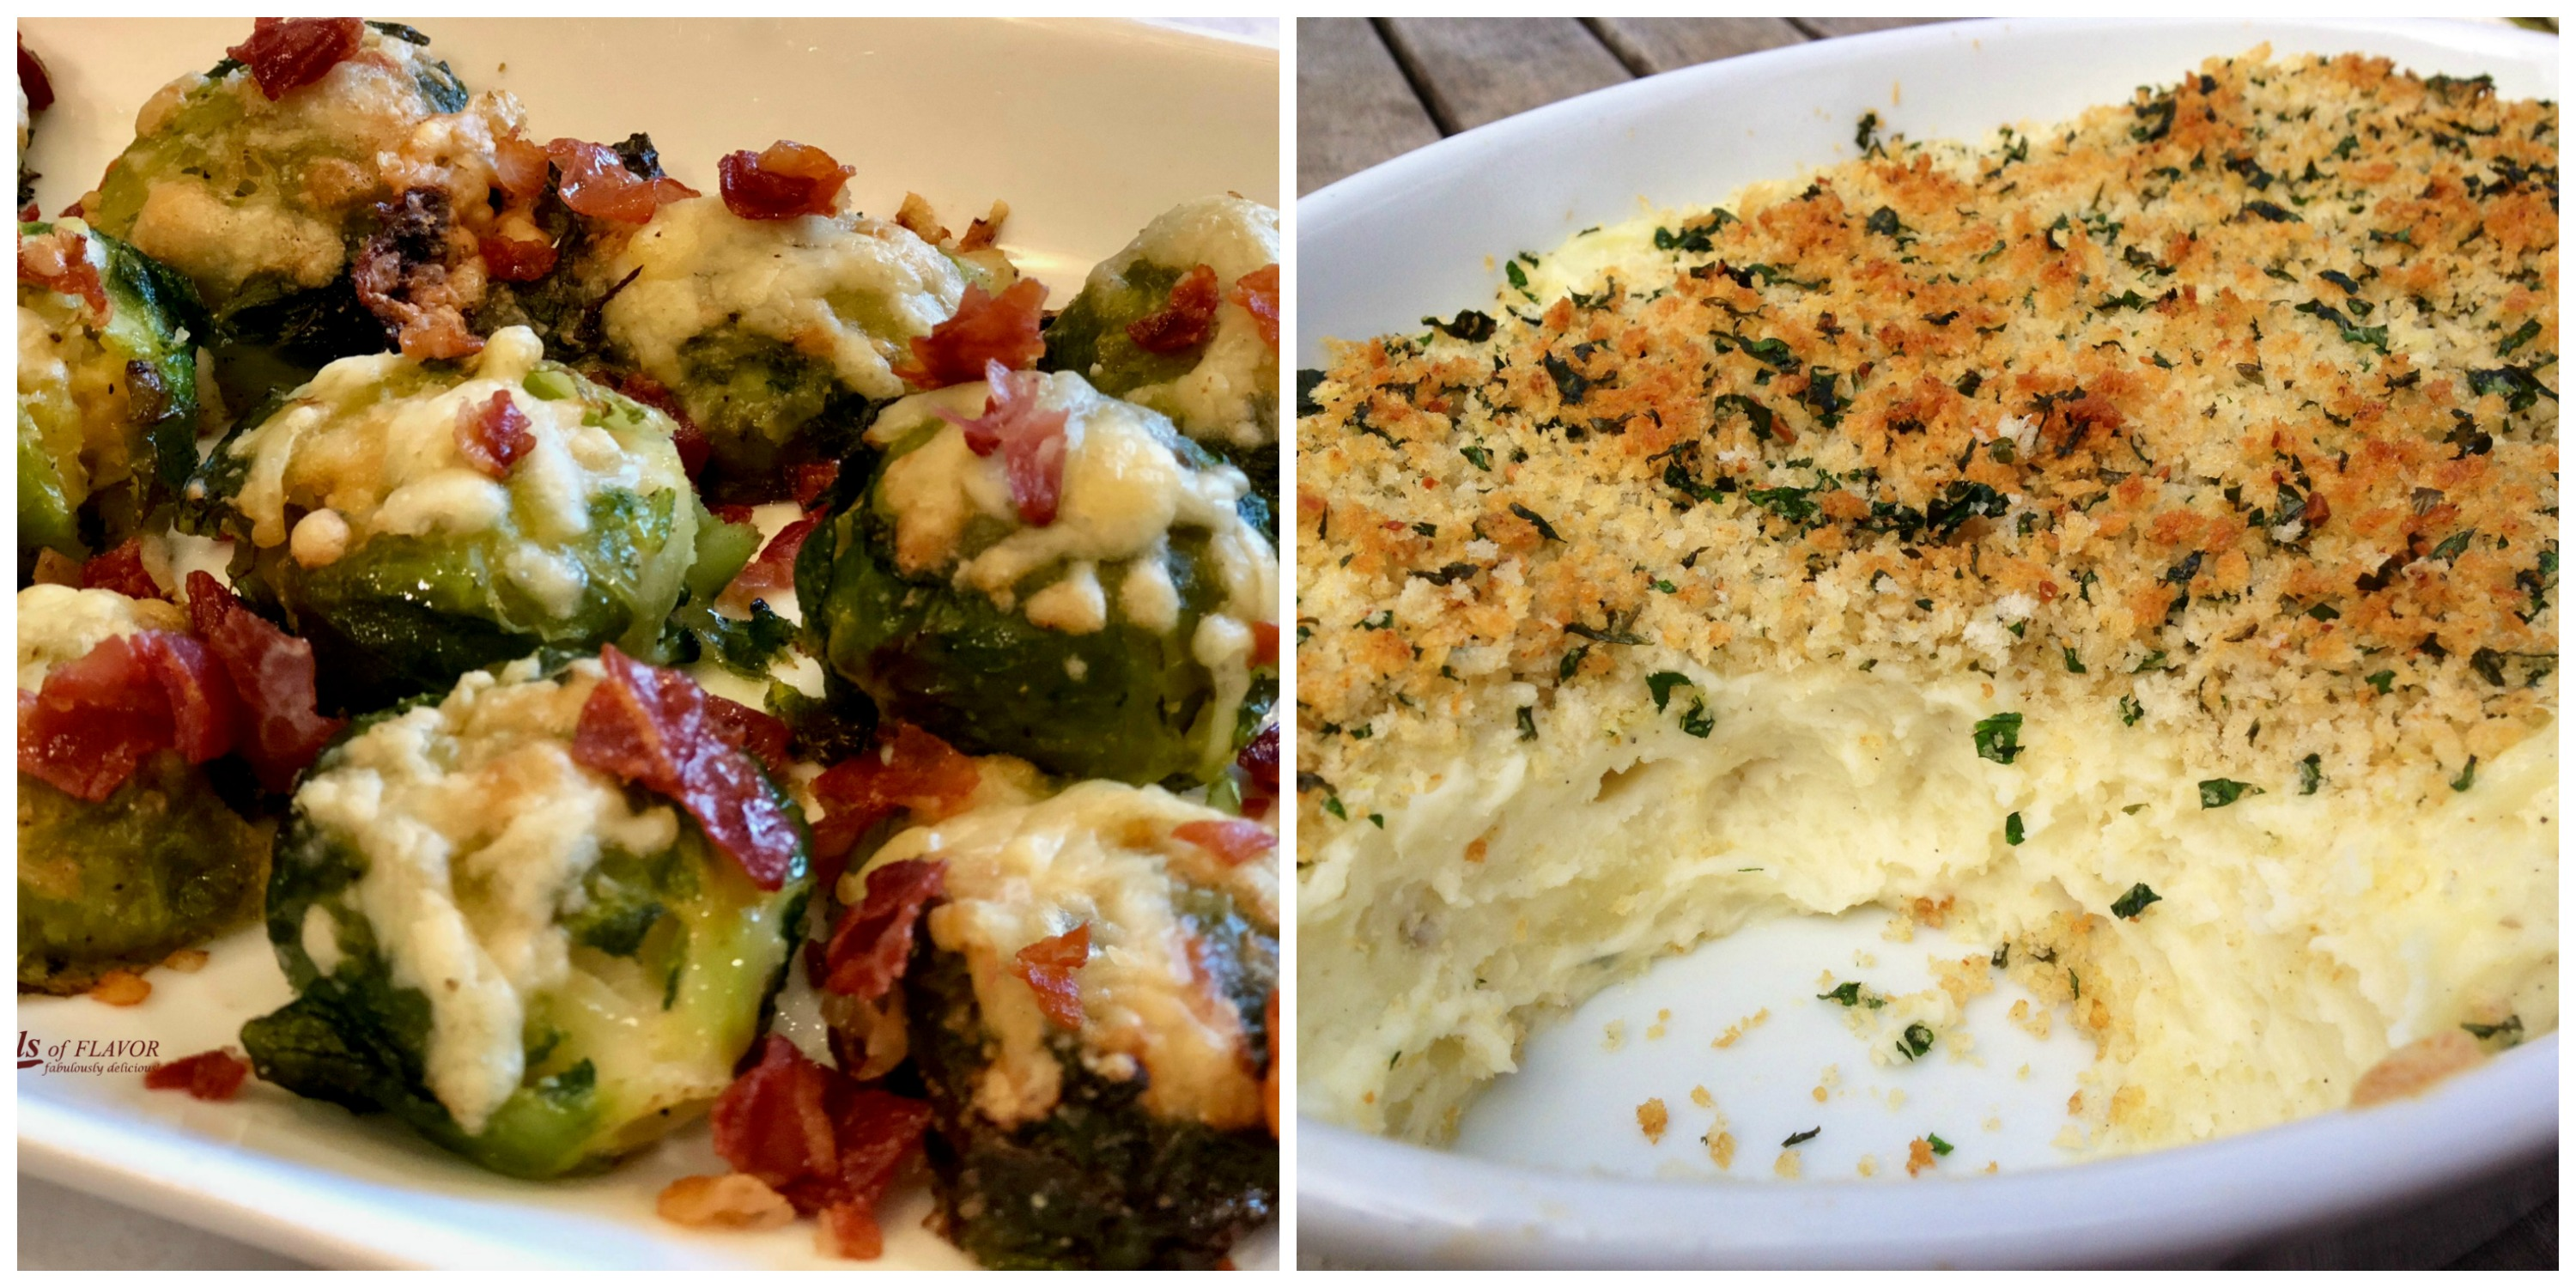 Smashed Brussels Sprouts and Panko Garlic Mashed Potatoes